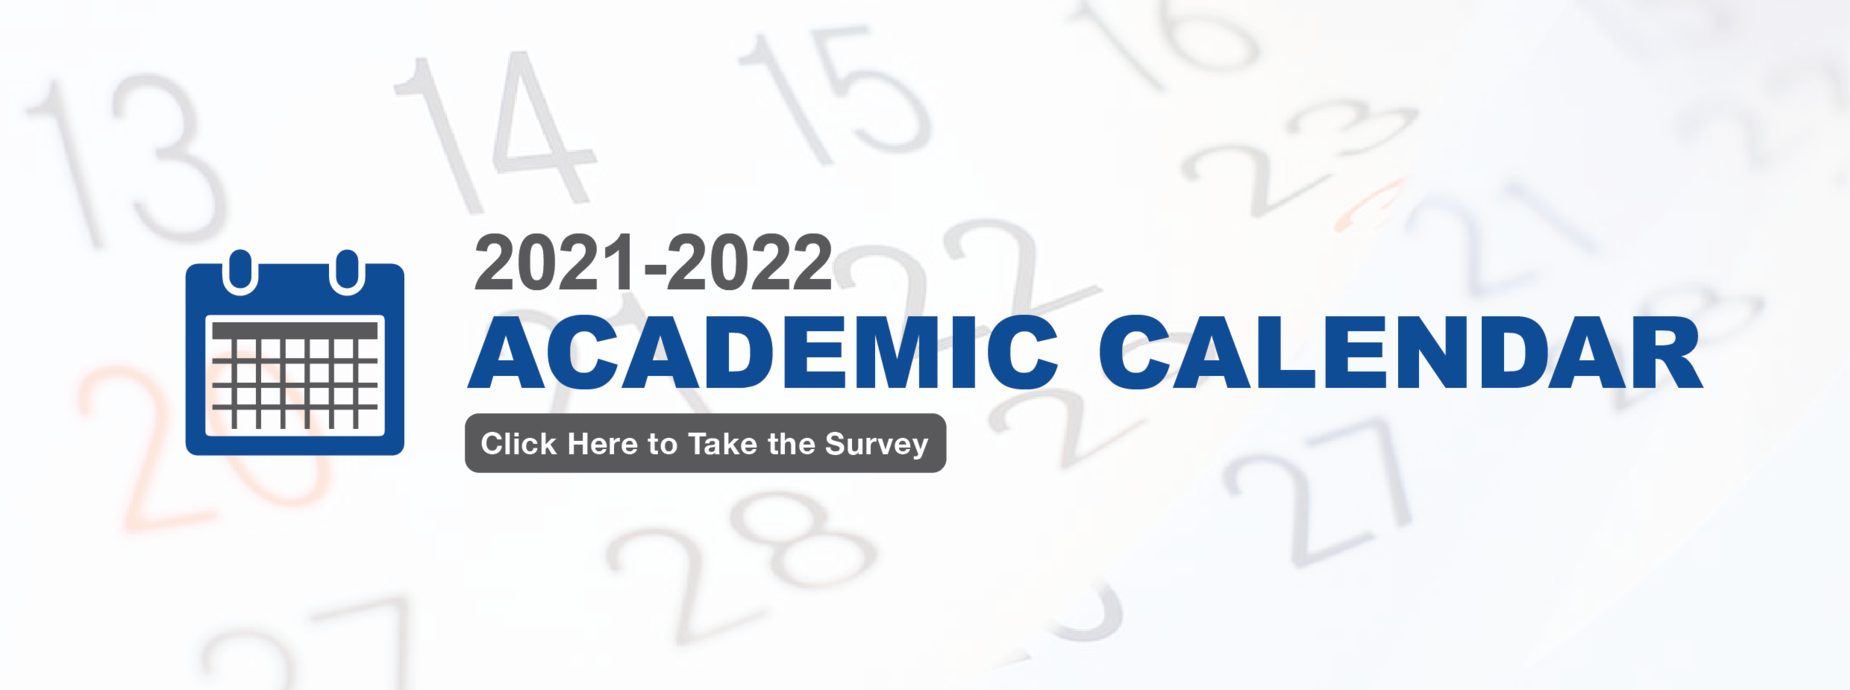 Click here to take the 2021-2022 Academic Calendar survey